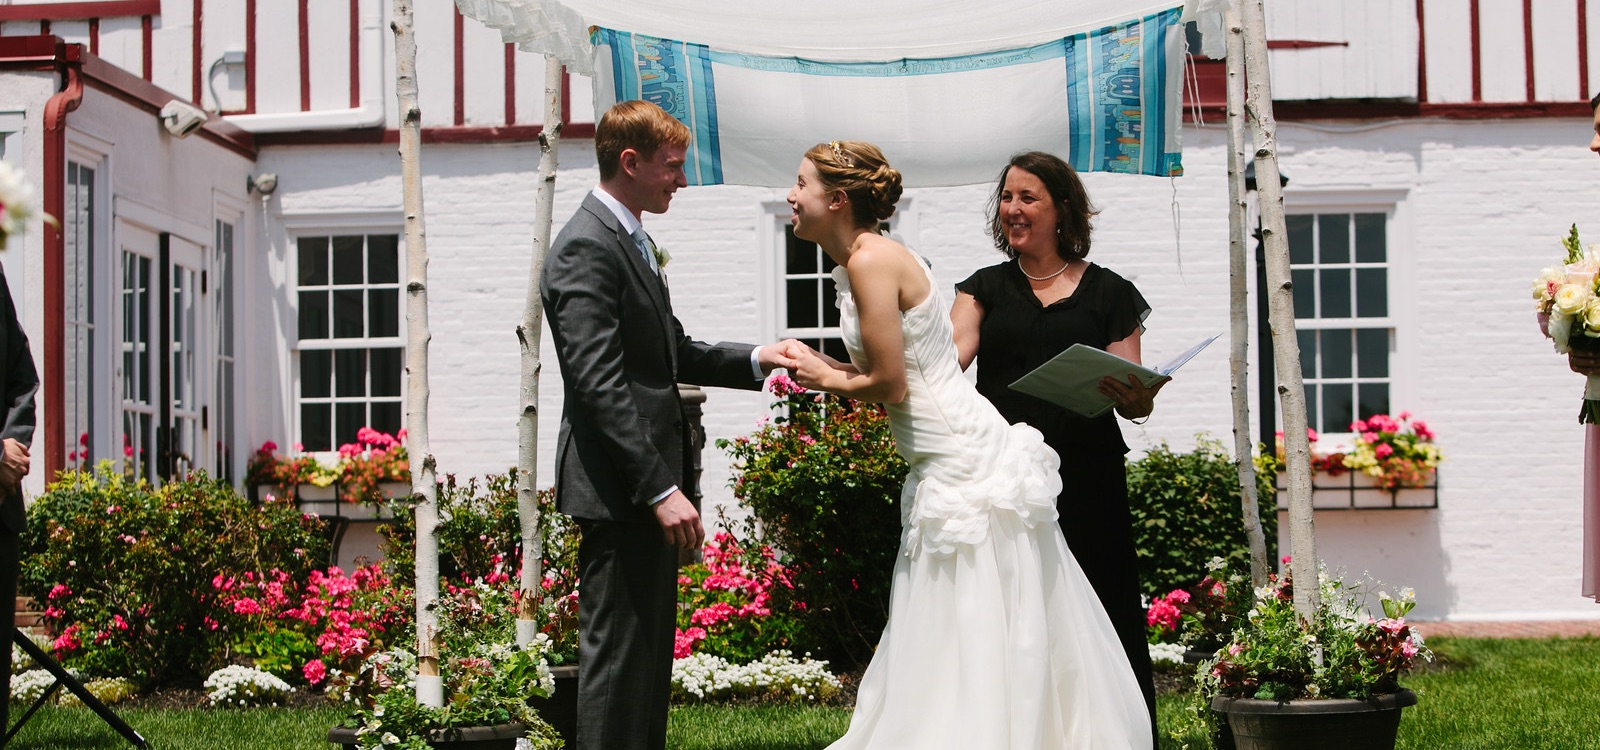 Non Denominational Ceremony Officiants Custom Ceremonies For Weddings Birth Celebrations Memorials